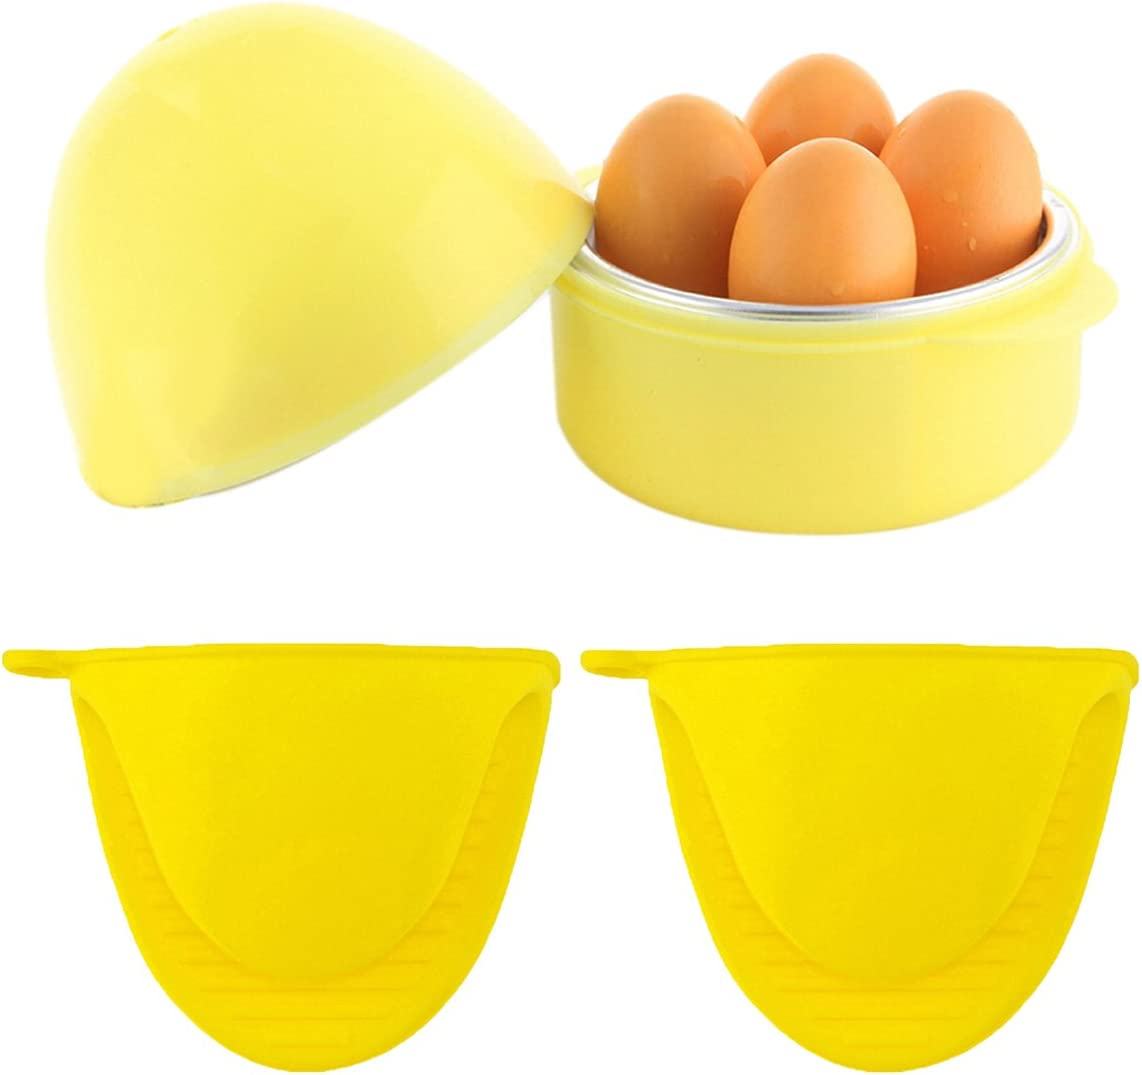 Coxeer Microwave Egg Cooker,Rapid Egg Cooker Microwave Boiler Egg For Hard or Soft Boiled 4 Eggs With 2PCS Aluminum Silicone Gloves(Yellow)